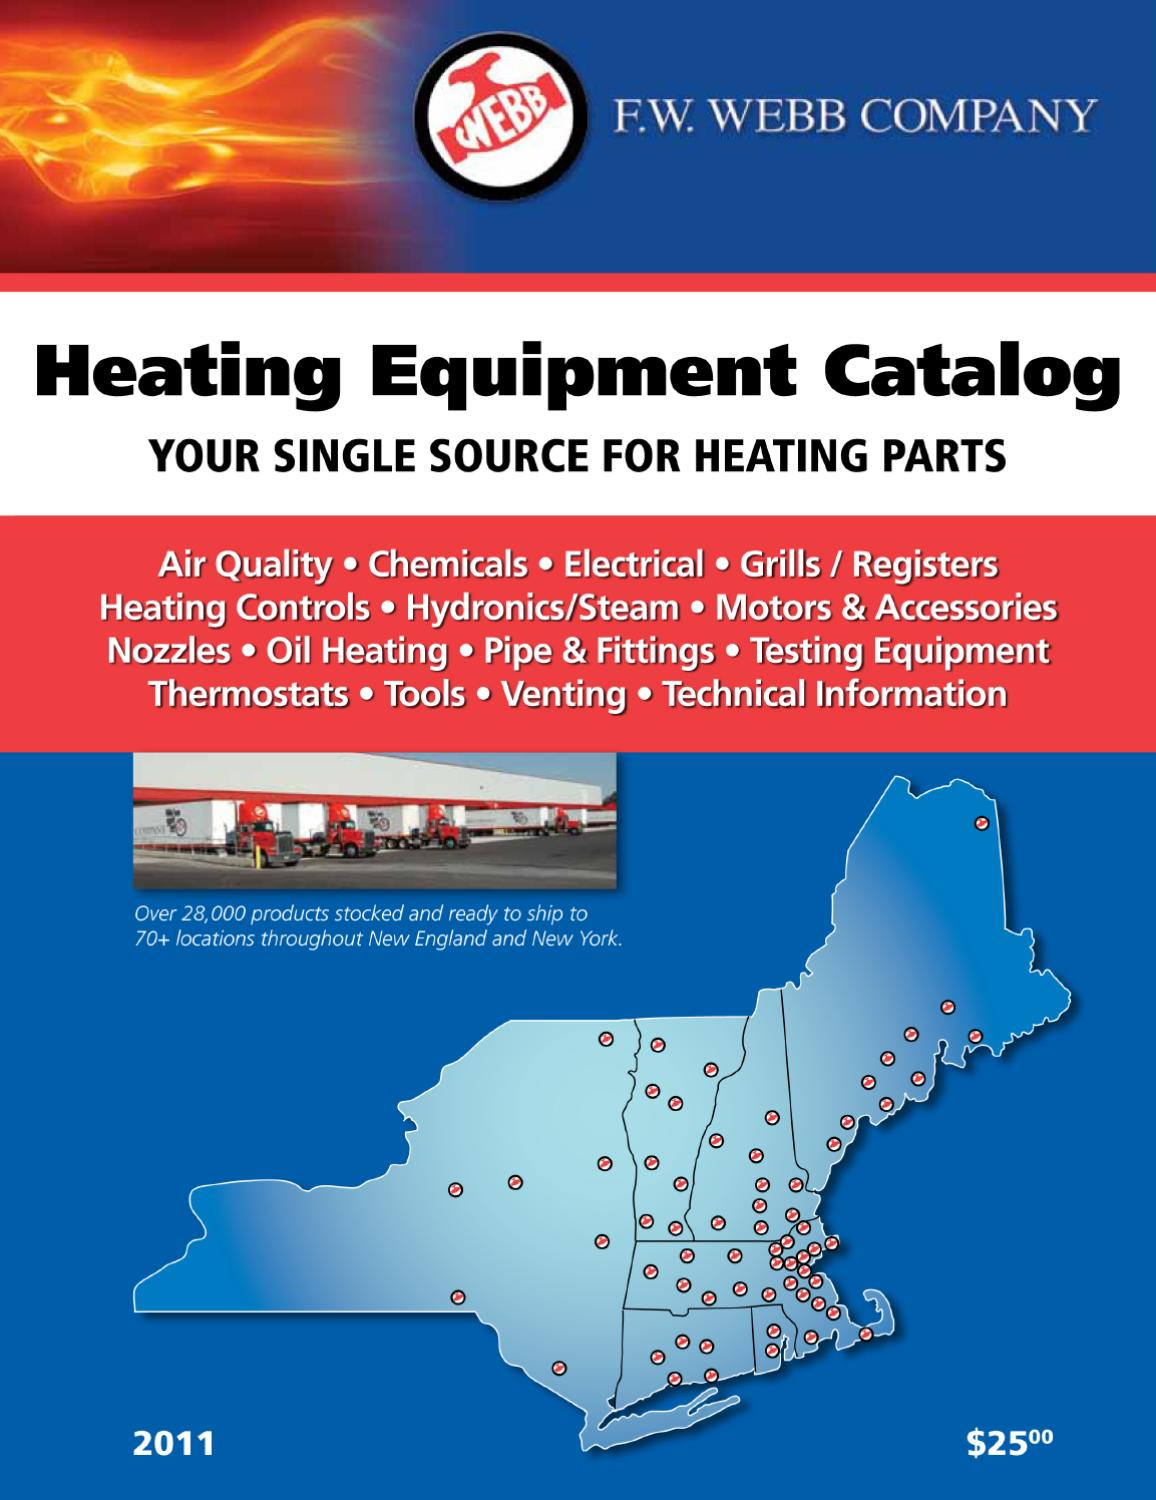 2011 Heating Catalog By Fw Webb Company Issuu Thermostat Heat And Cool 2 Transformers